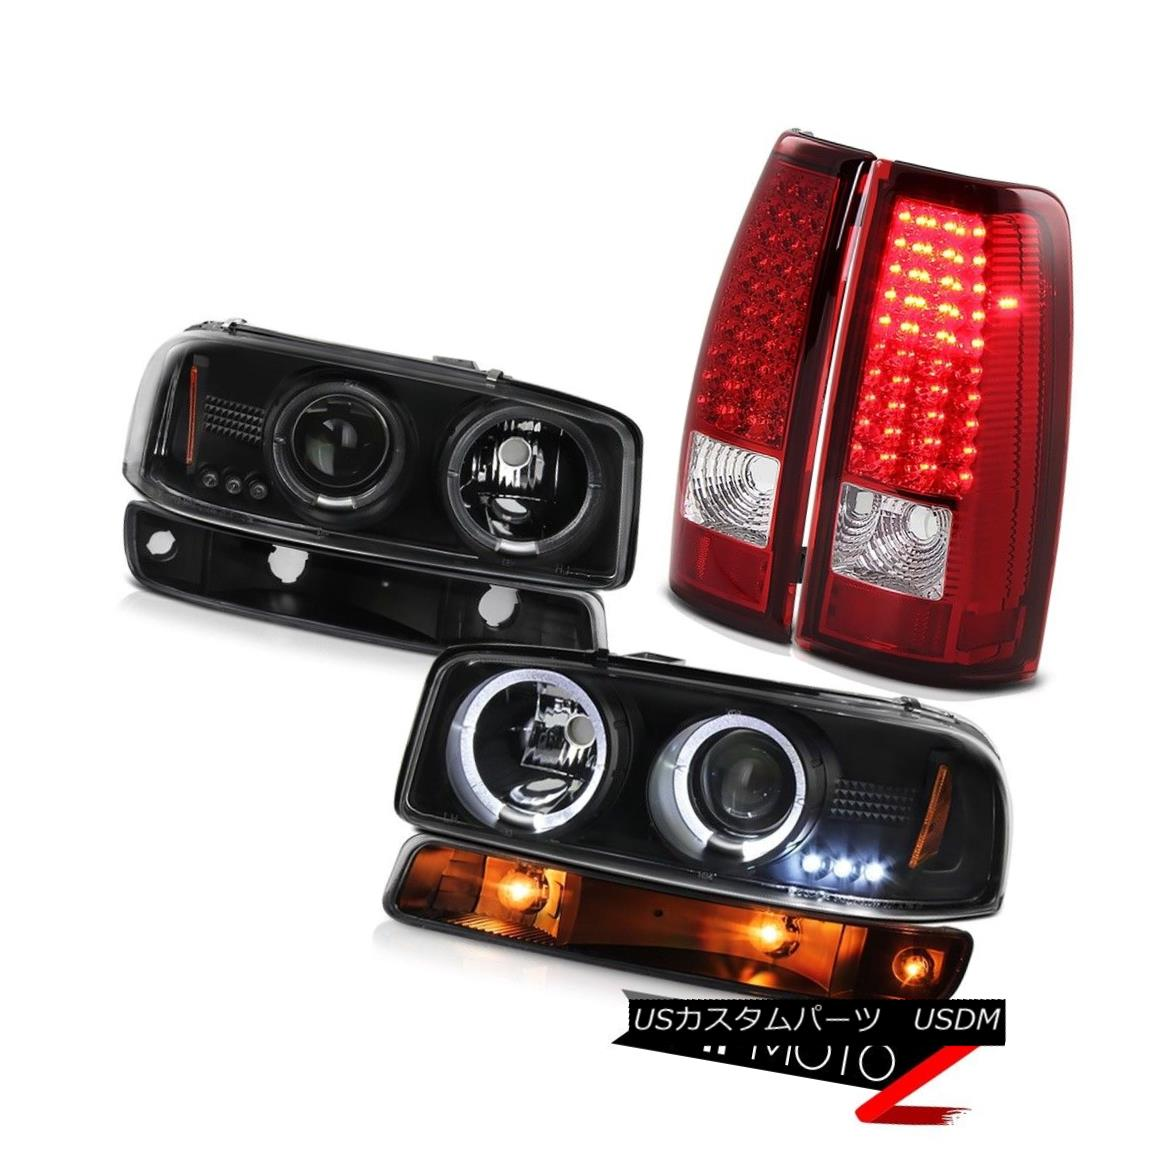 ヘッドライト 1999-2002 Sierra SLT SMD taillamps bumper lamp headlights